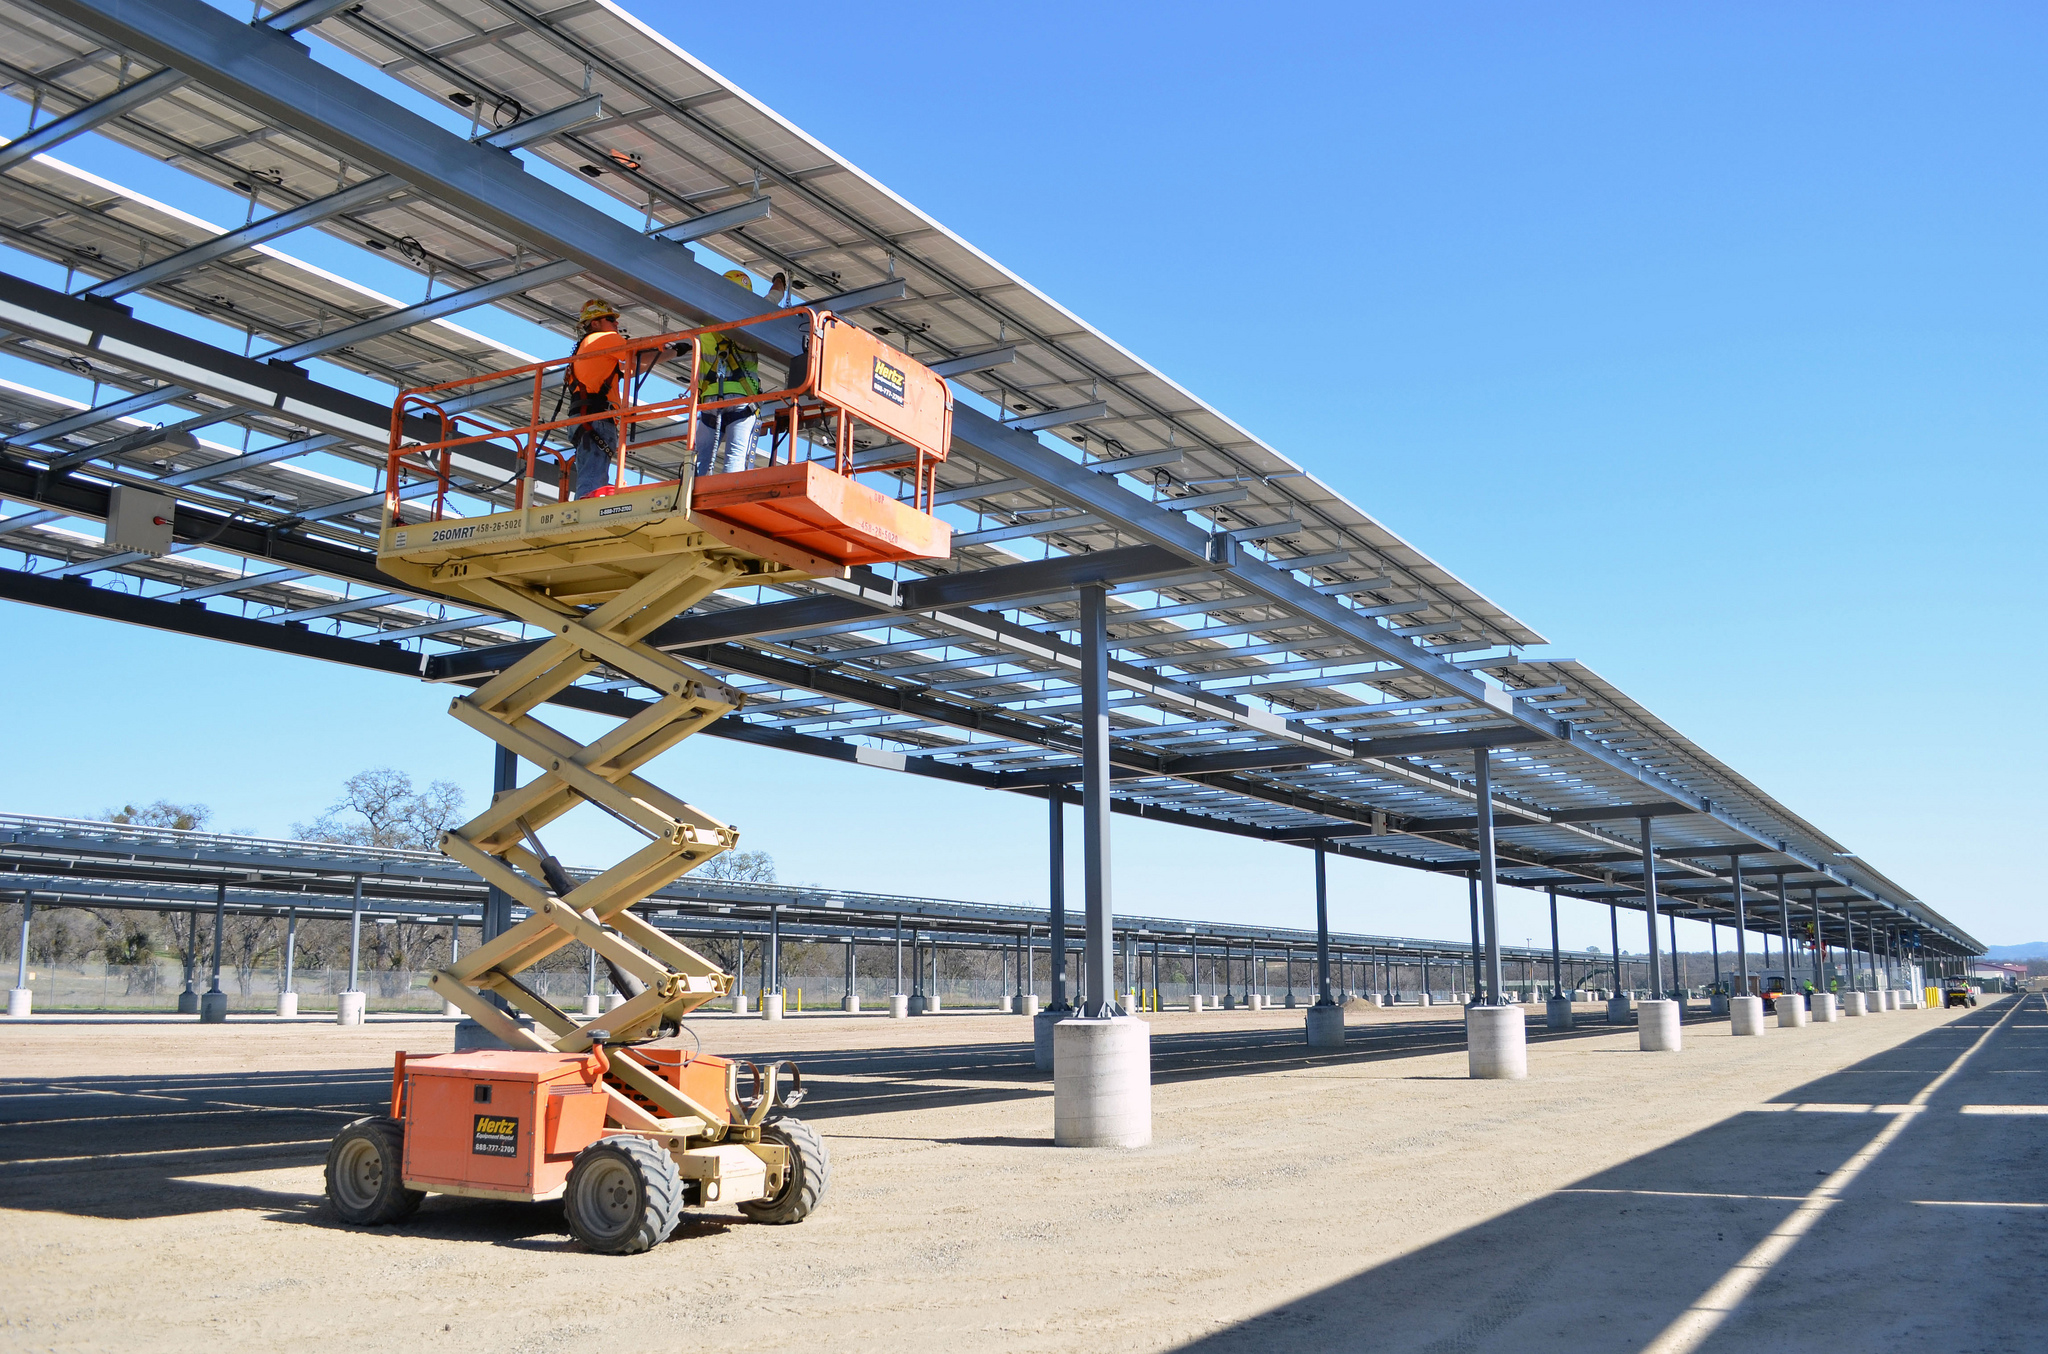 A Solar Canopy that aims to spread rooftop solar in urban areas ...